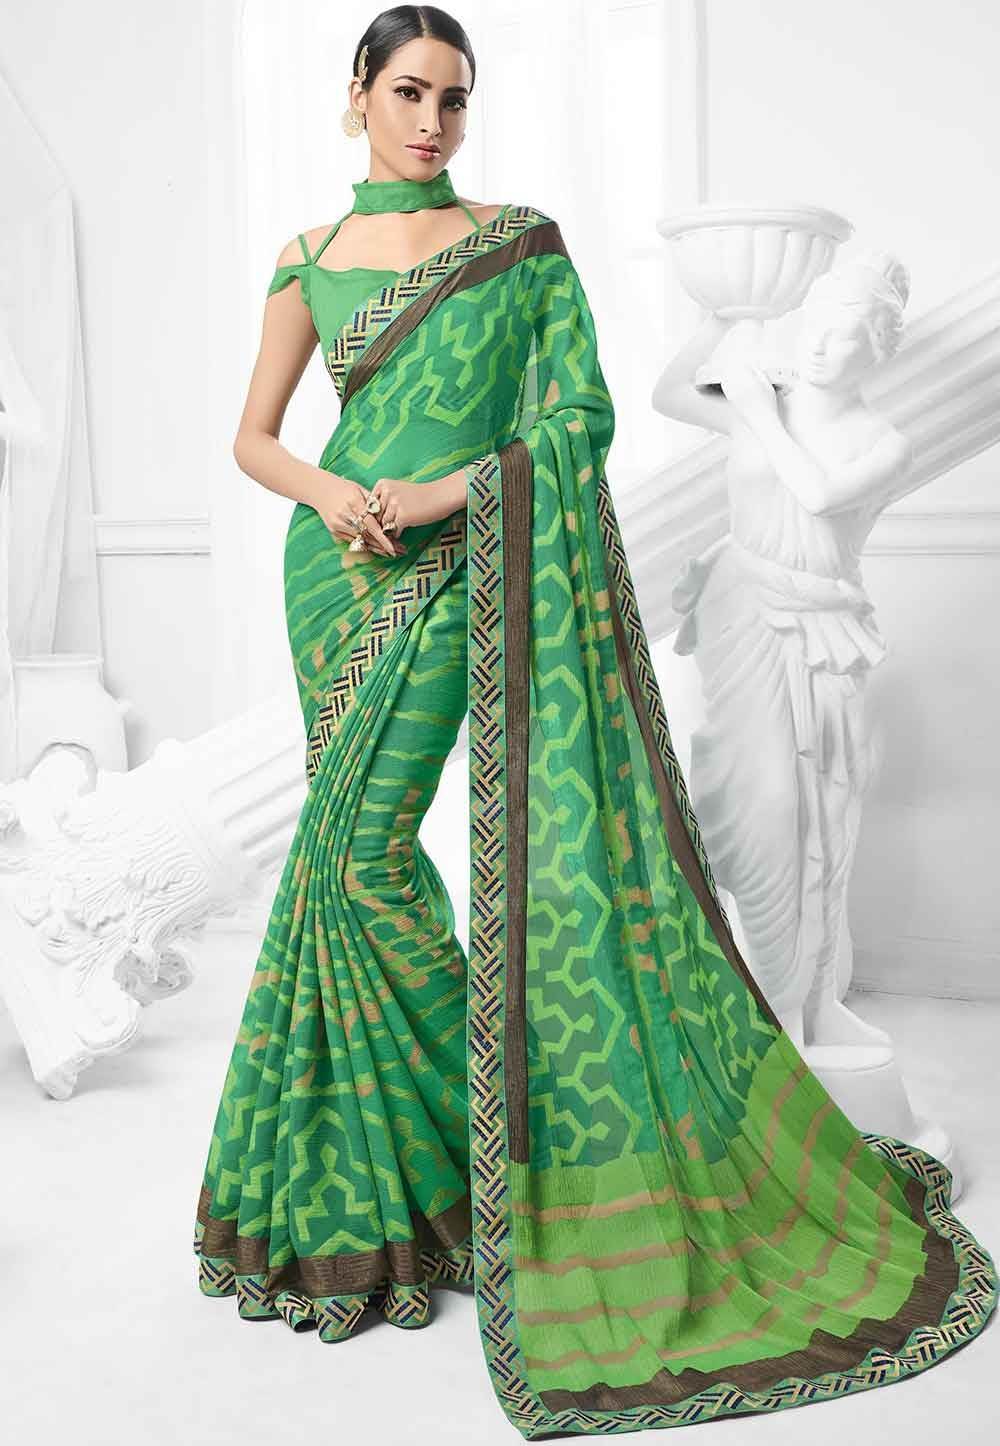 Green Colour Indian Sari.